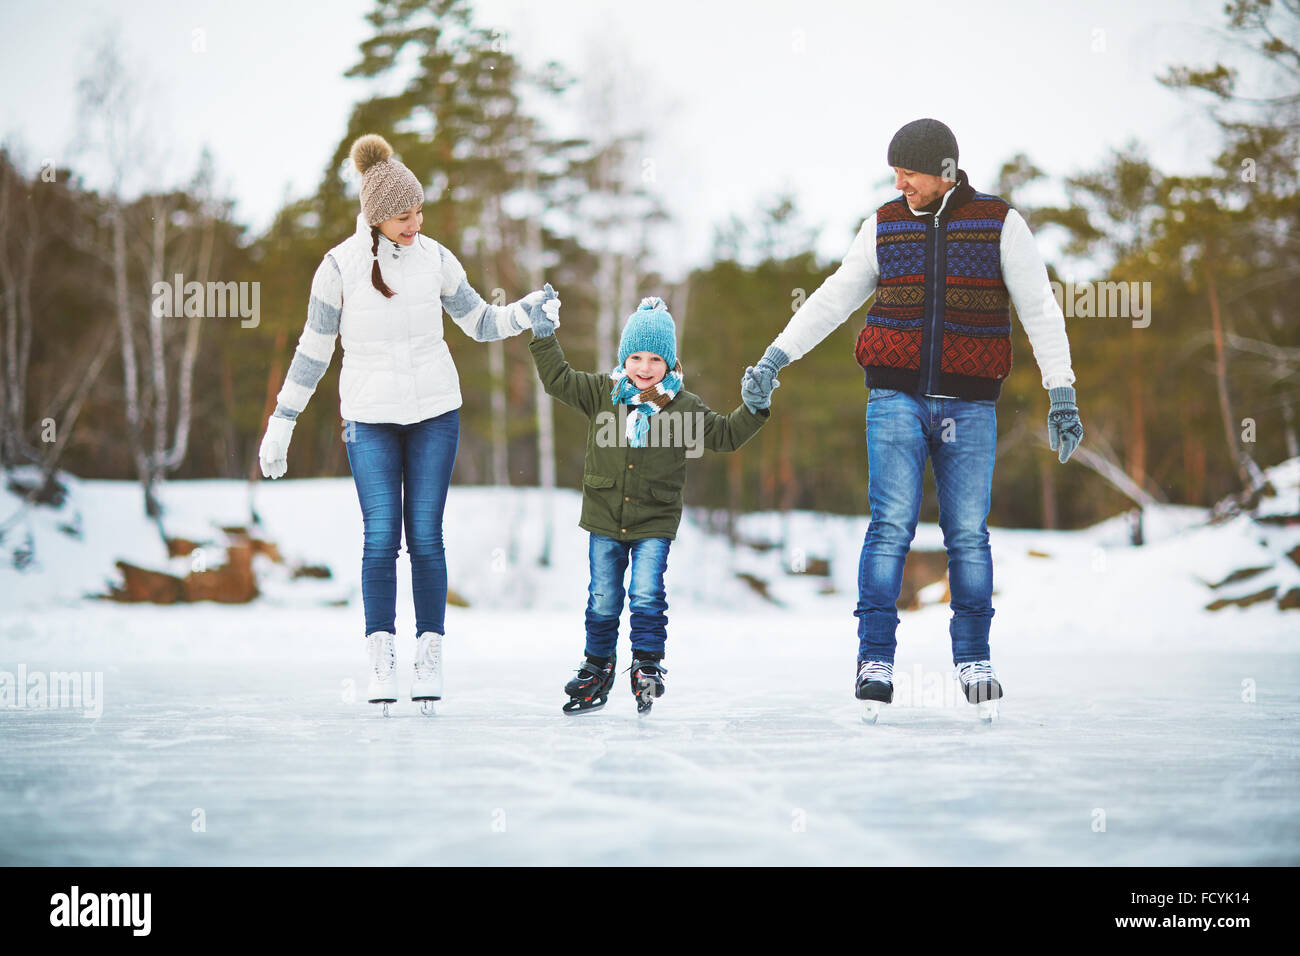 Family of three skating together on the rink at leisure - Stock Image